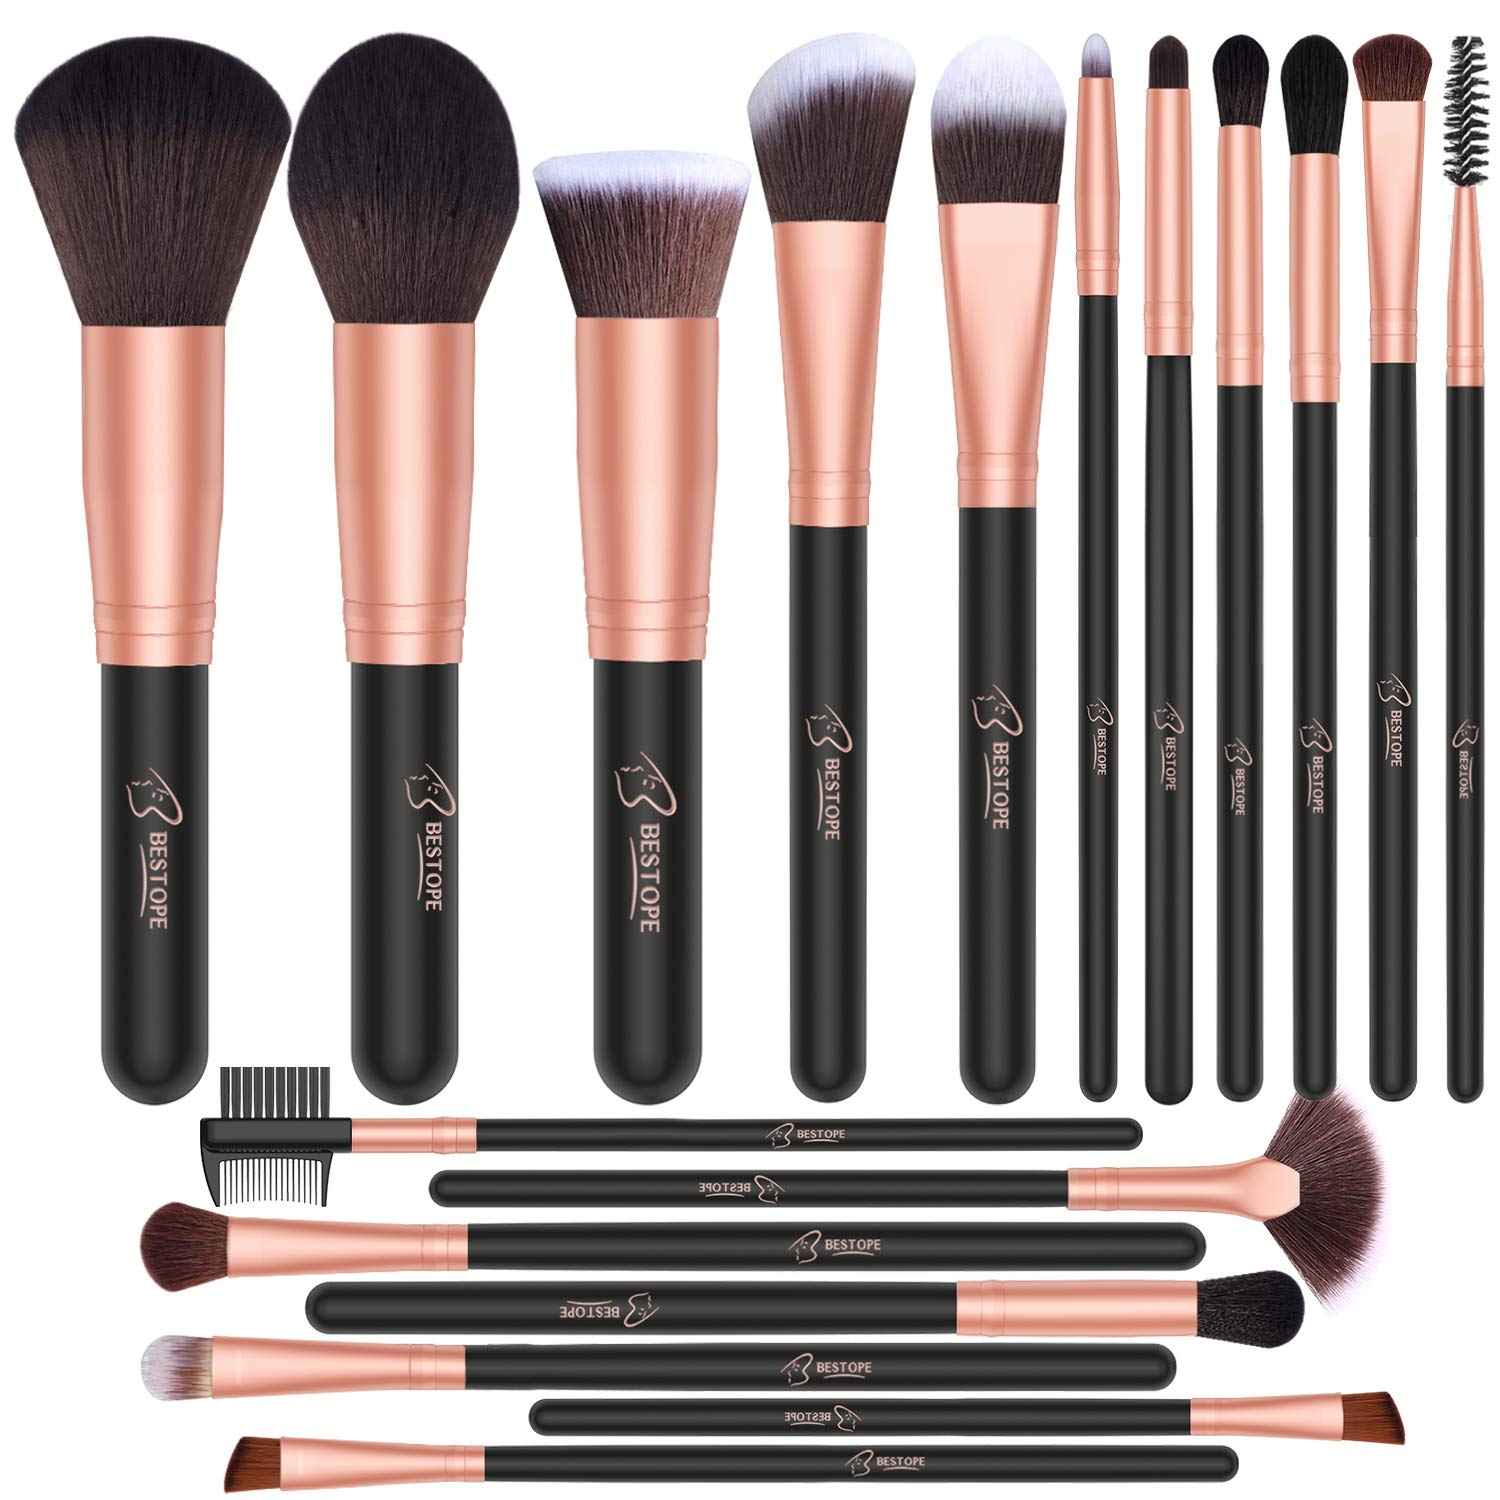 BESTOPE 18 Pcs Makeup Brush Set Premium Synthetic Fan Foundation Powder Kabuki Brushes Concealers Eye Shadows Make Up Brushes Kit: Beauty